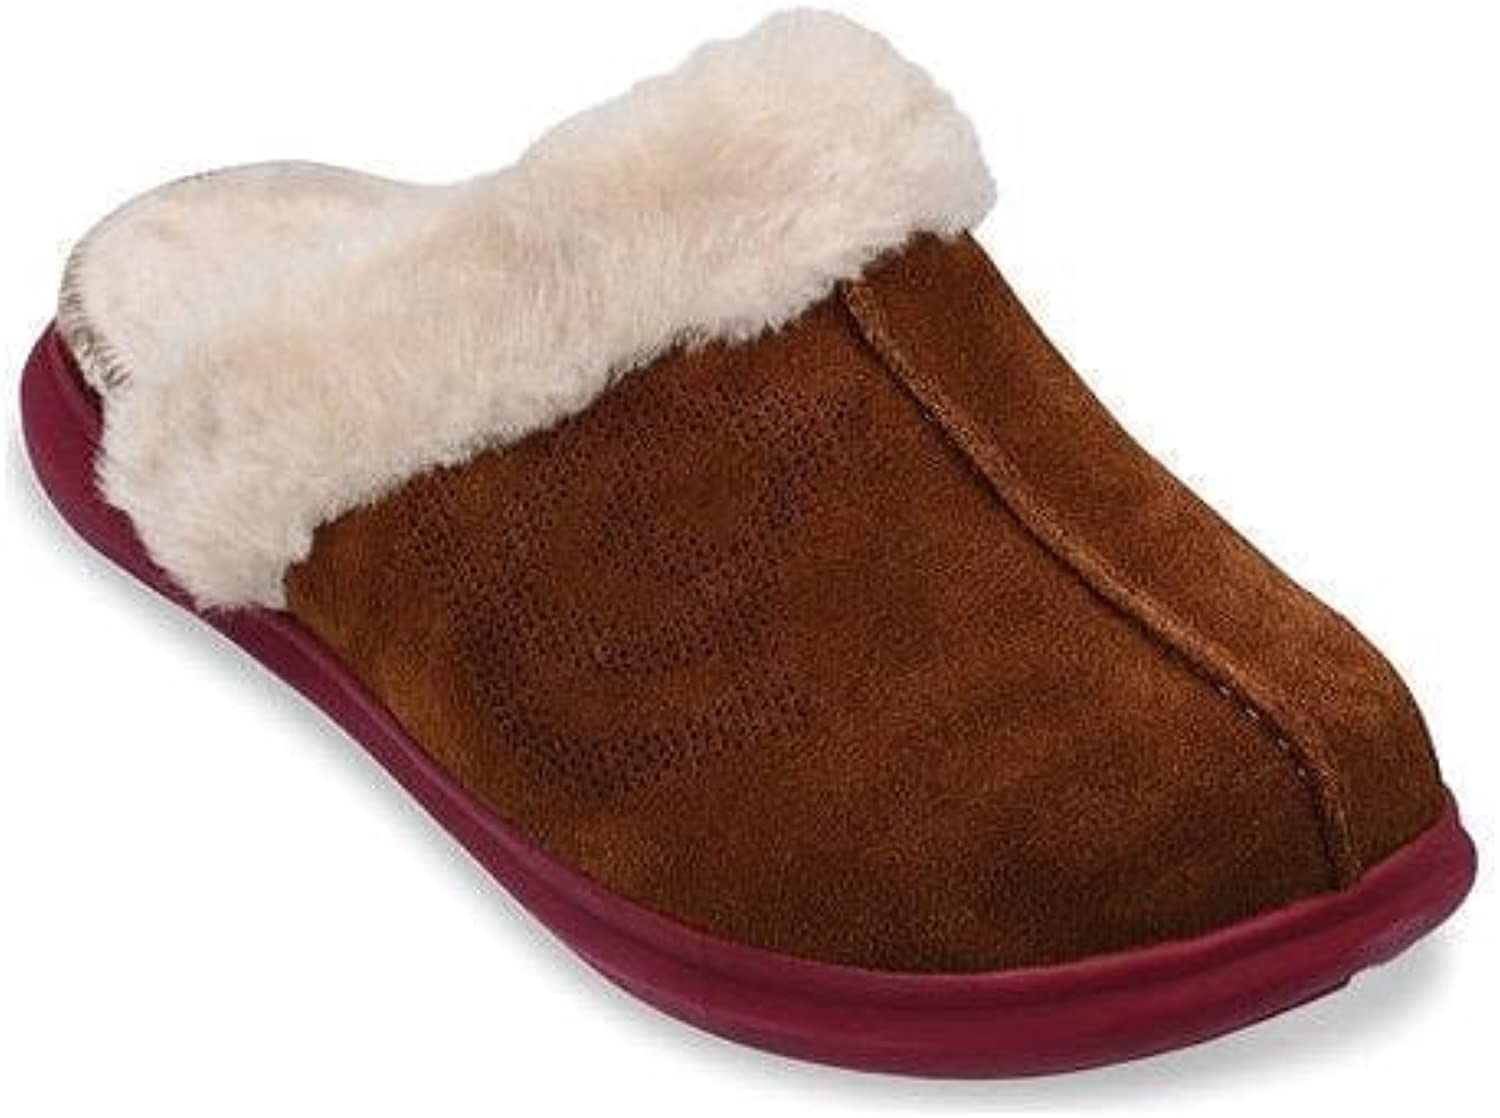 Fourfoot Women's Supreme Slide Suede Slippers   color Bison   Women's Casual Slip-On Style and A Premium Suede